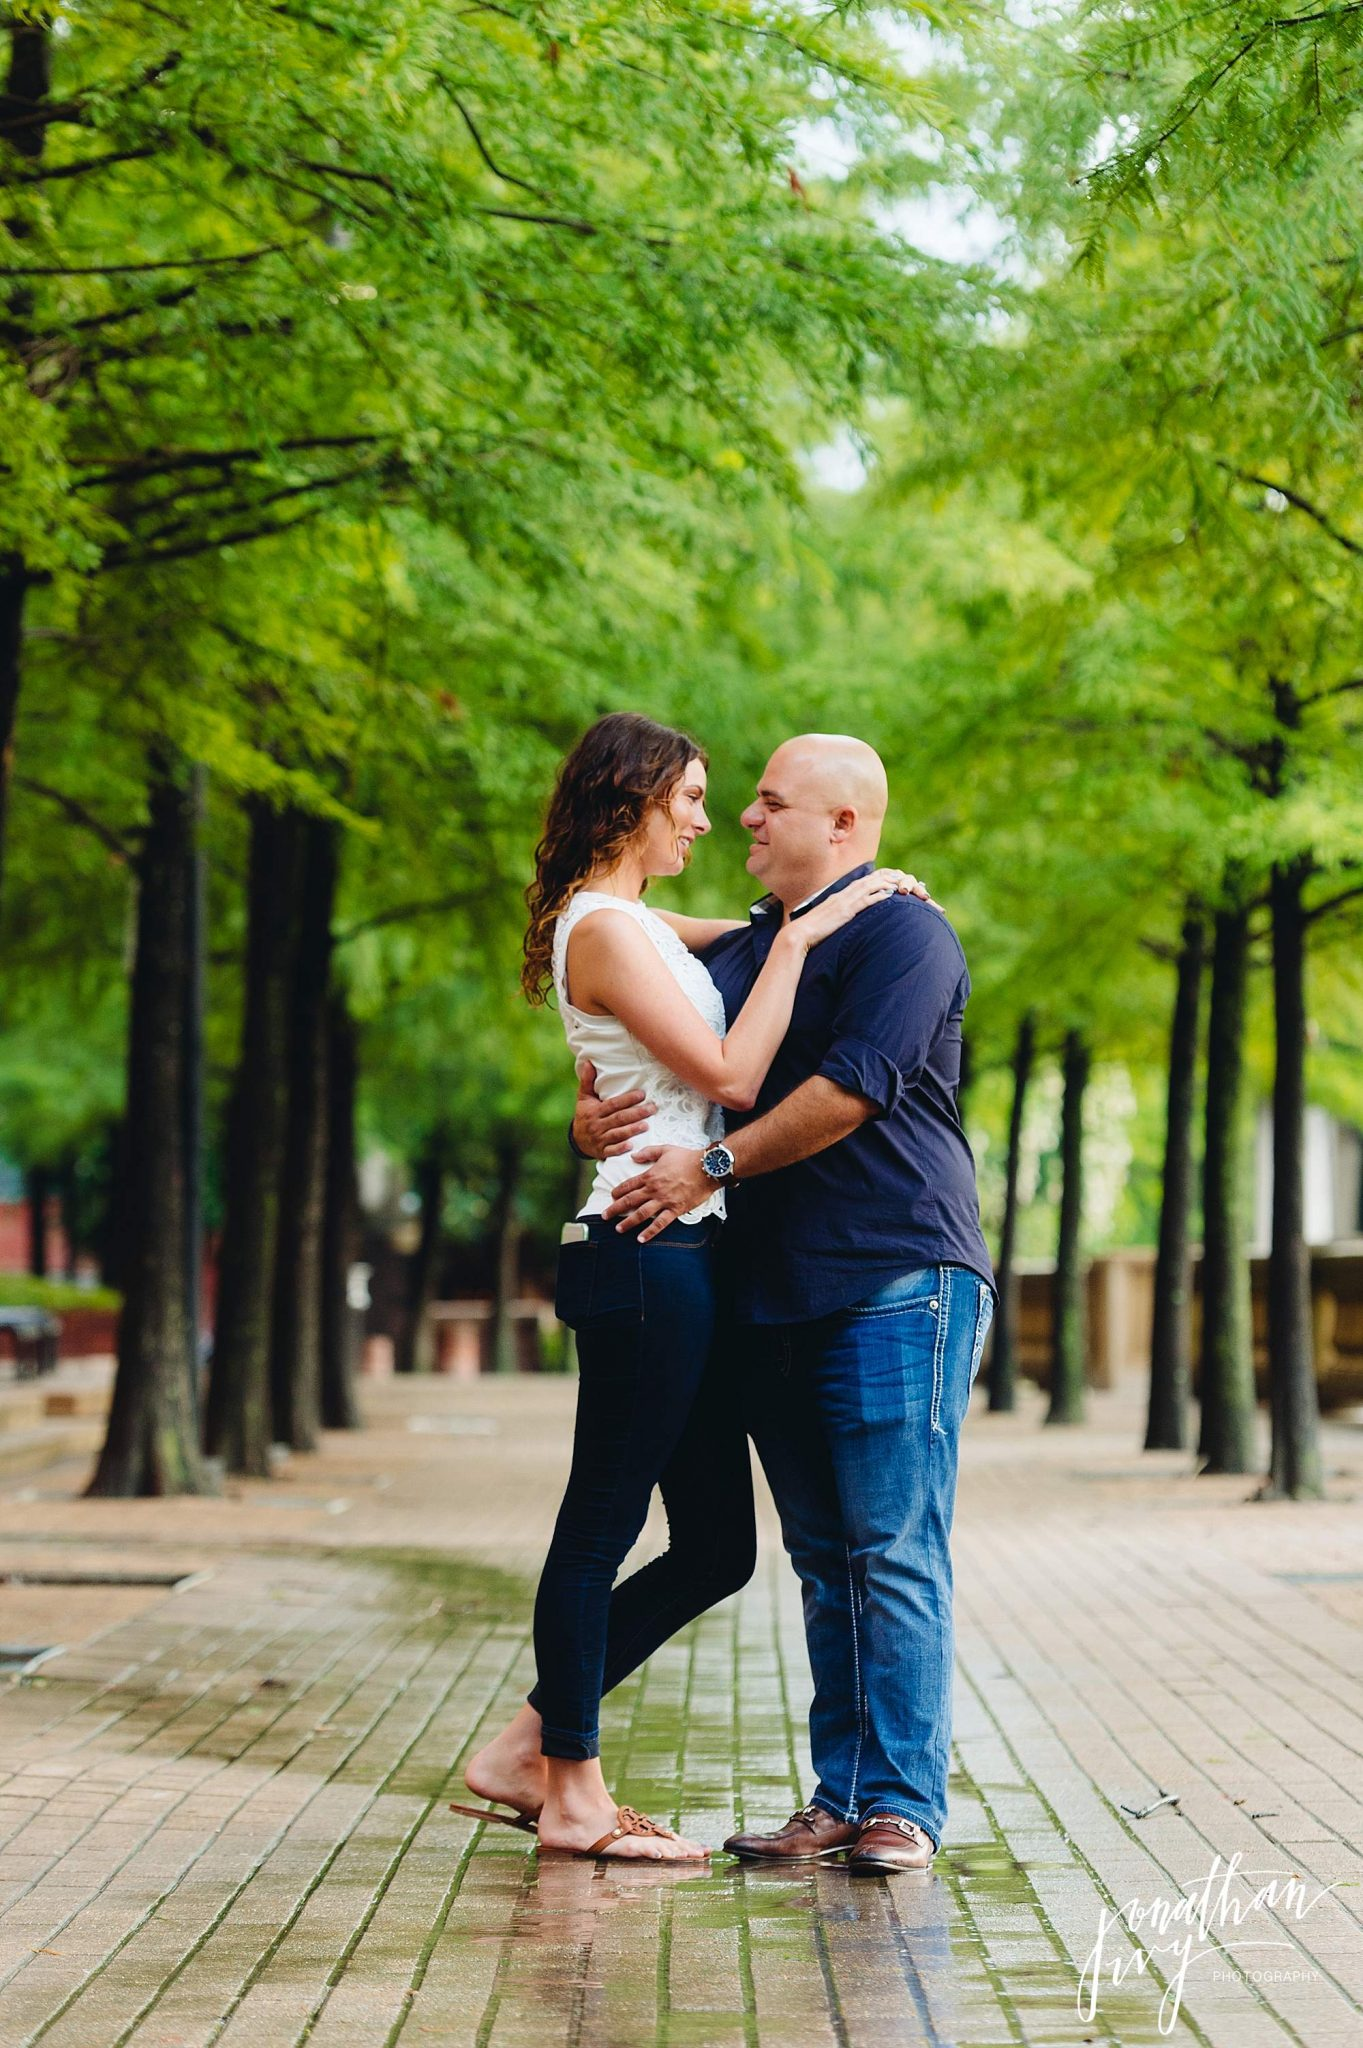 Romantic-Engagement-Photos-Houston_0011.jpg